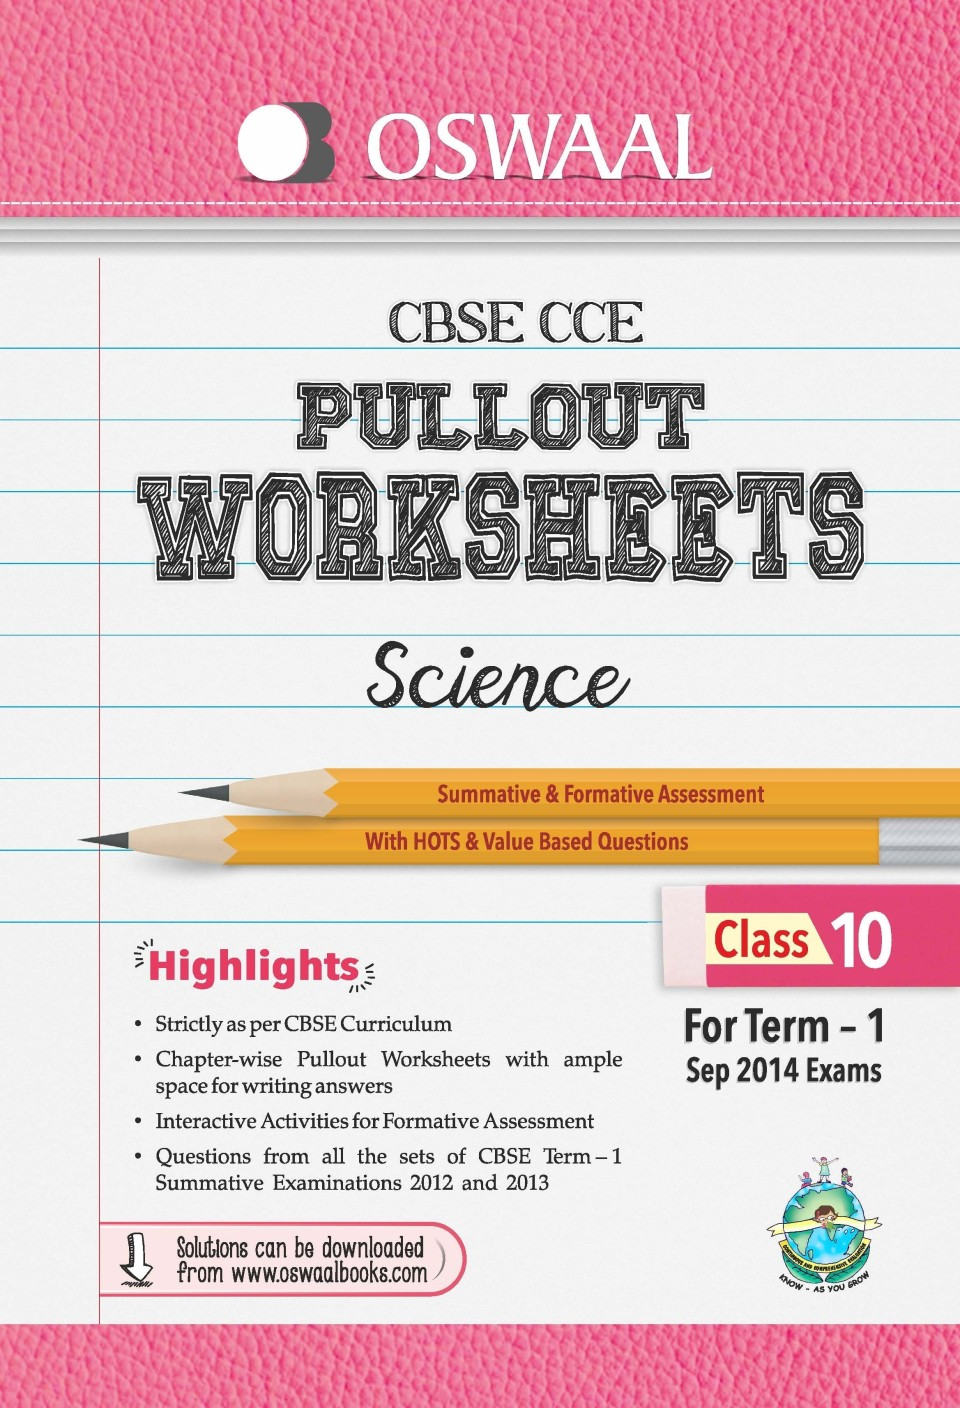 oswaal cbse cce pullout worksheets for term 1 class 10 science 1st edition buy oswaal cbse cce. Black Bedroom Furniture Sets. Home Design Ideas